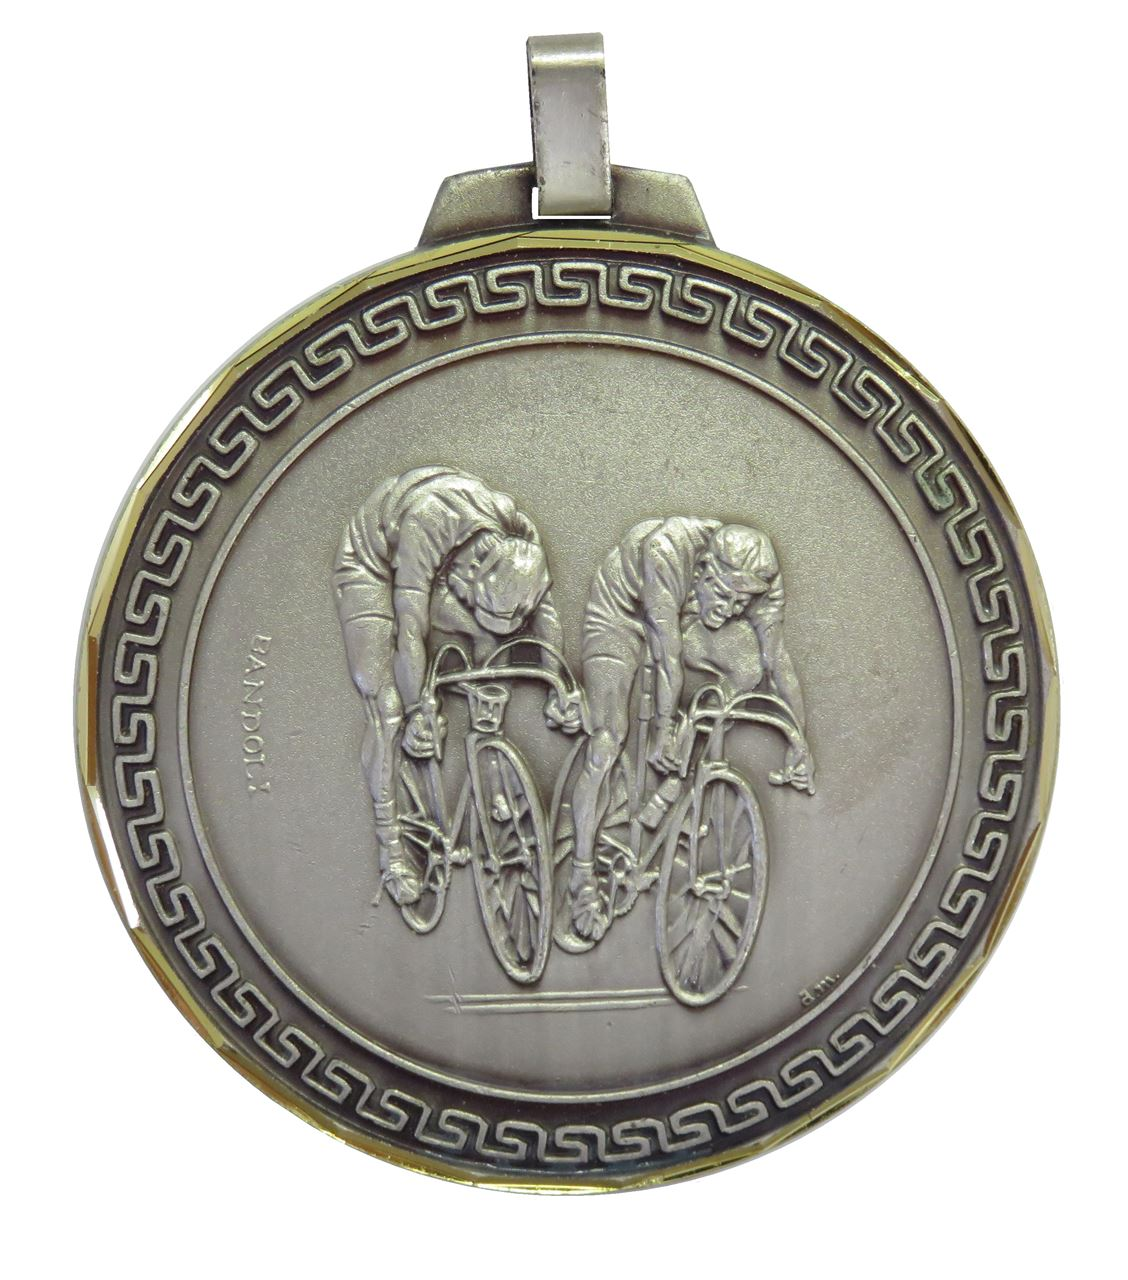 Silver Faceted Cycle Race Medal (size: 70mm) - 194F